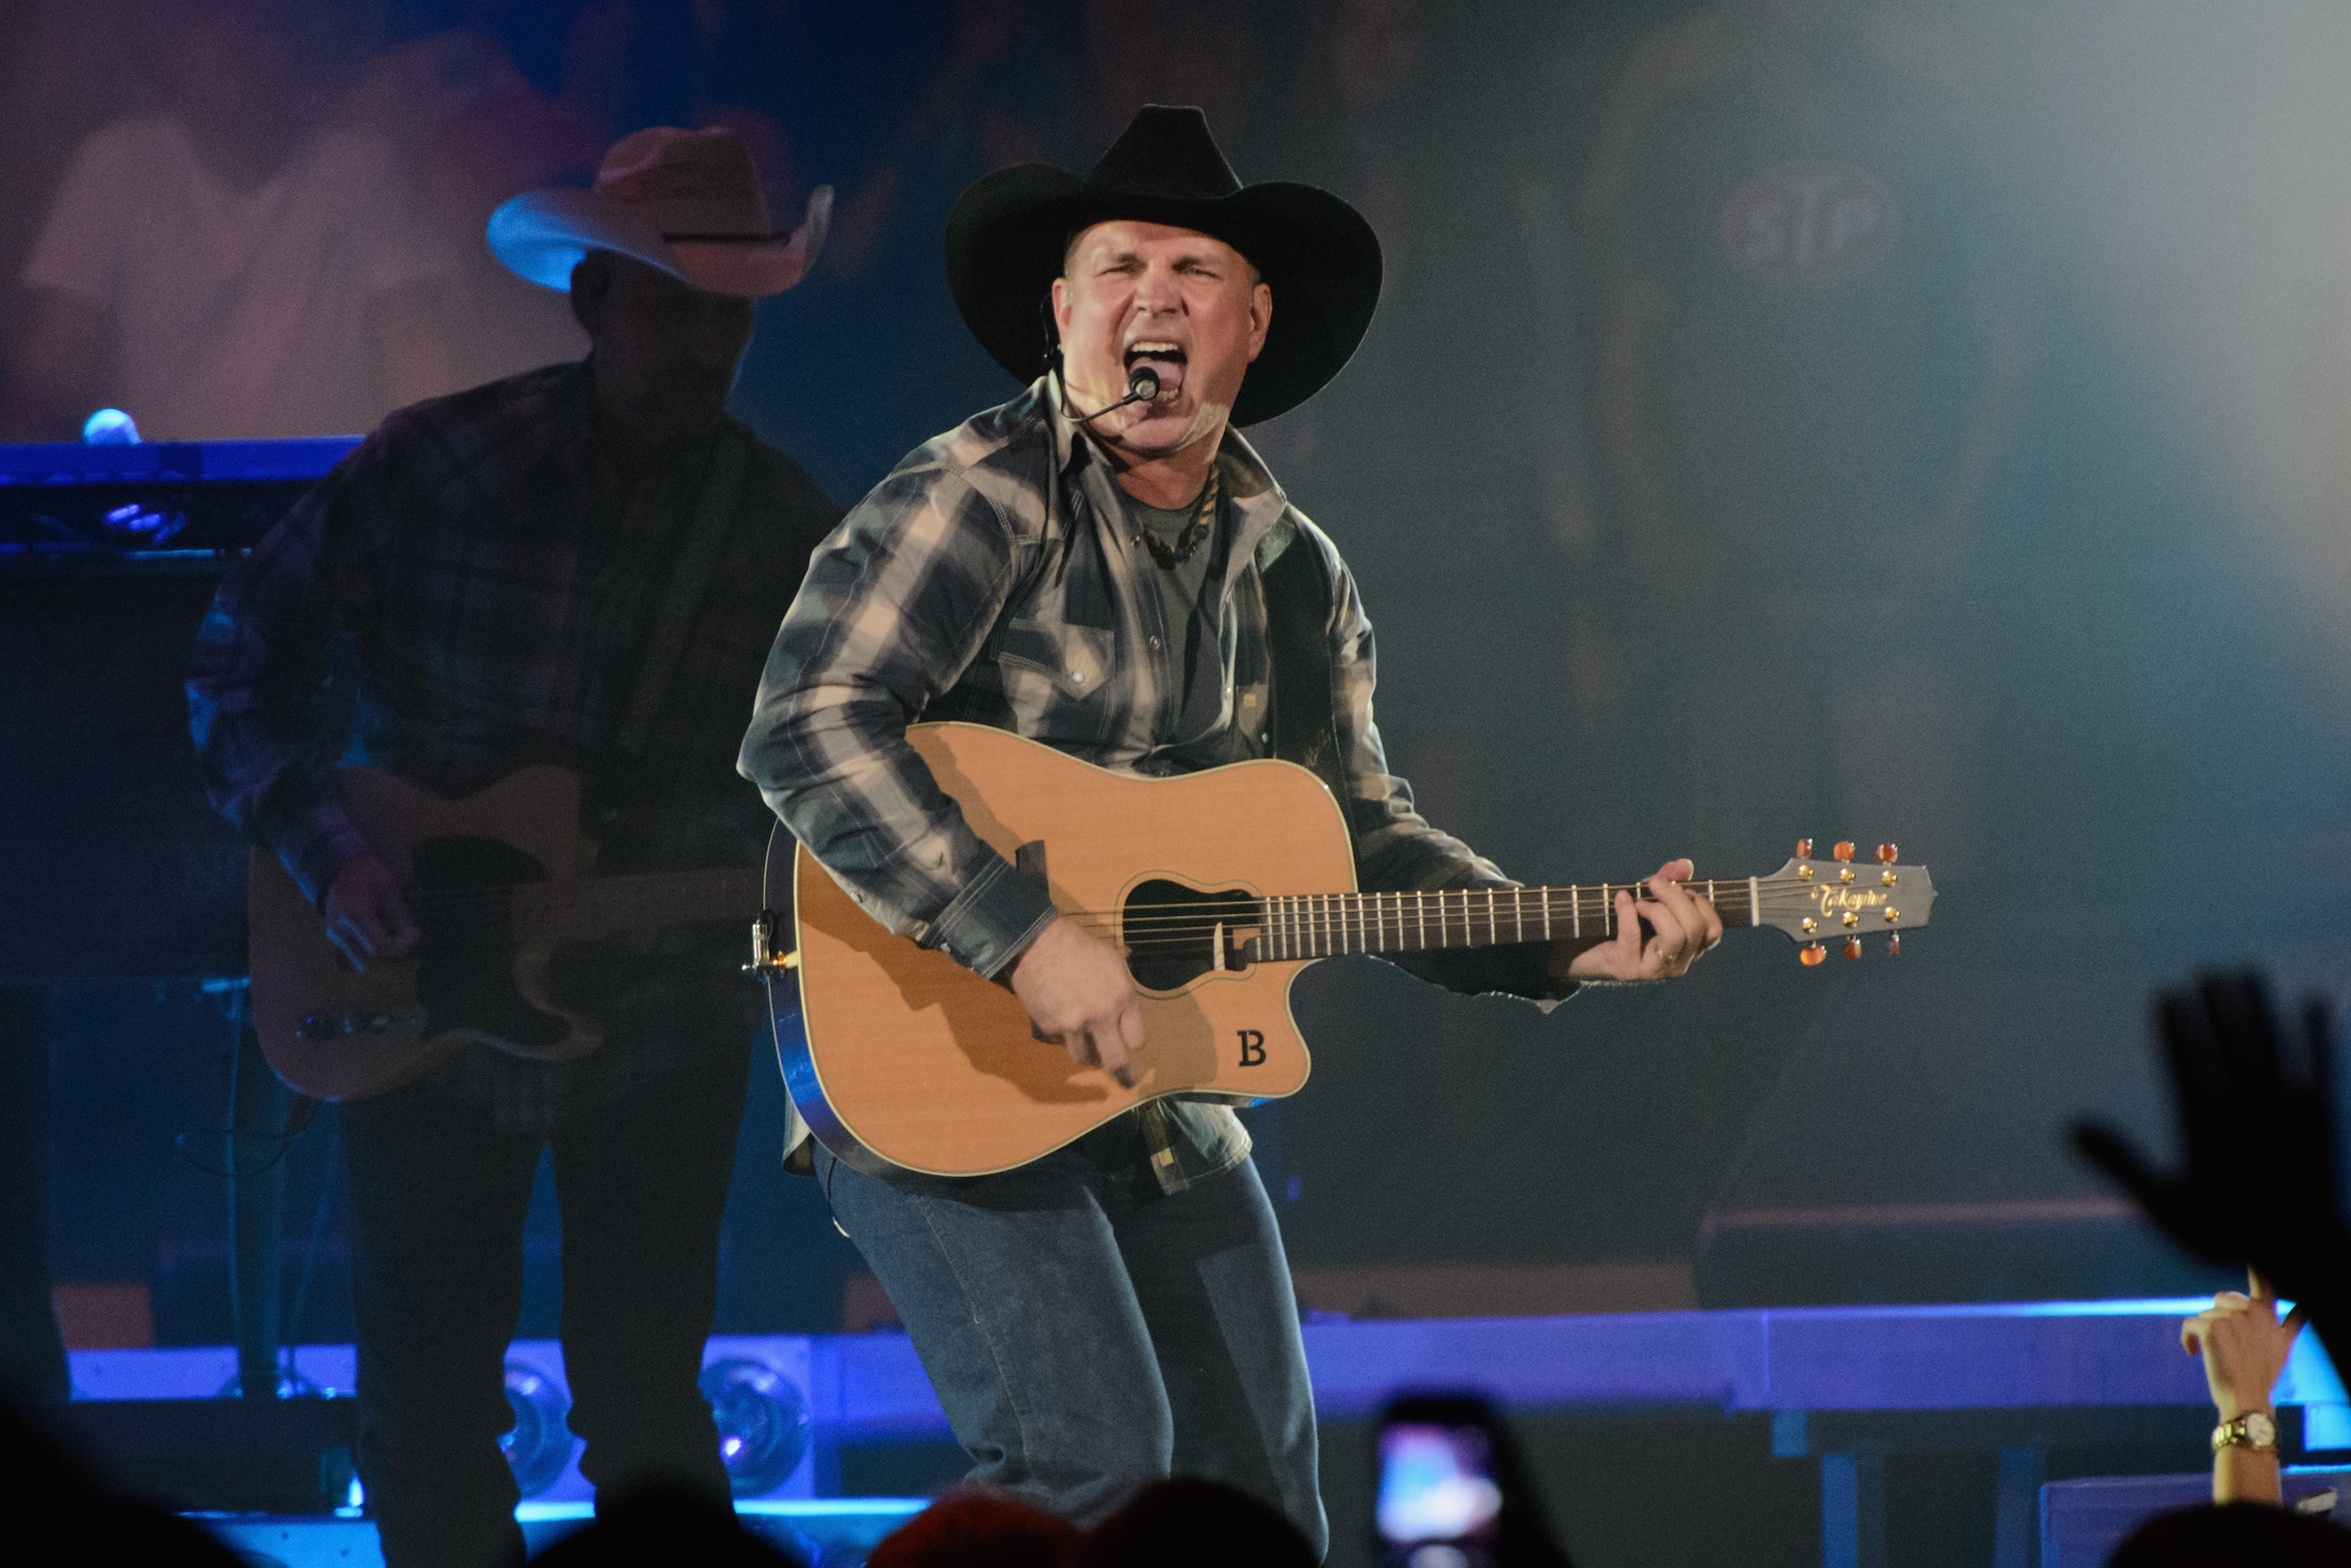 Lee Brice Garth Brooks Perform More Than A News Megacountry